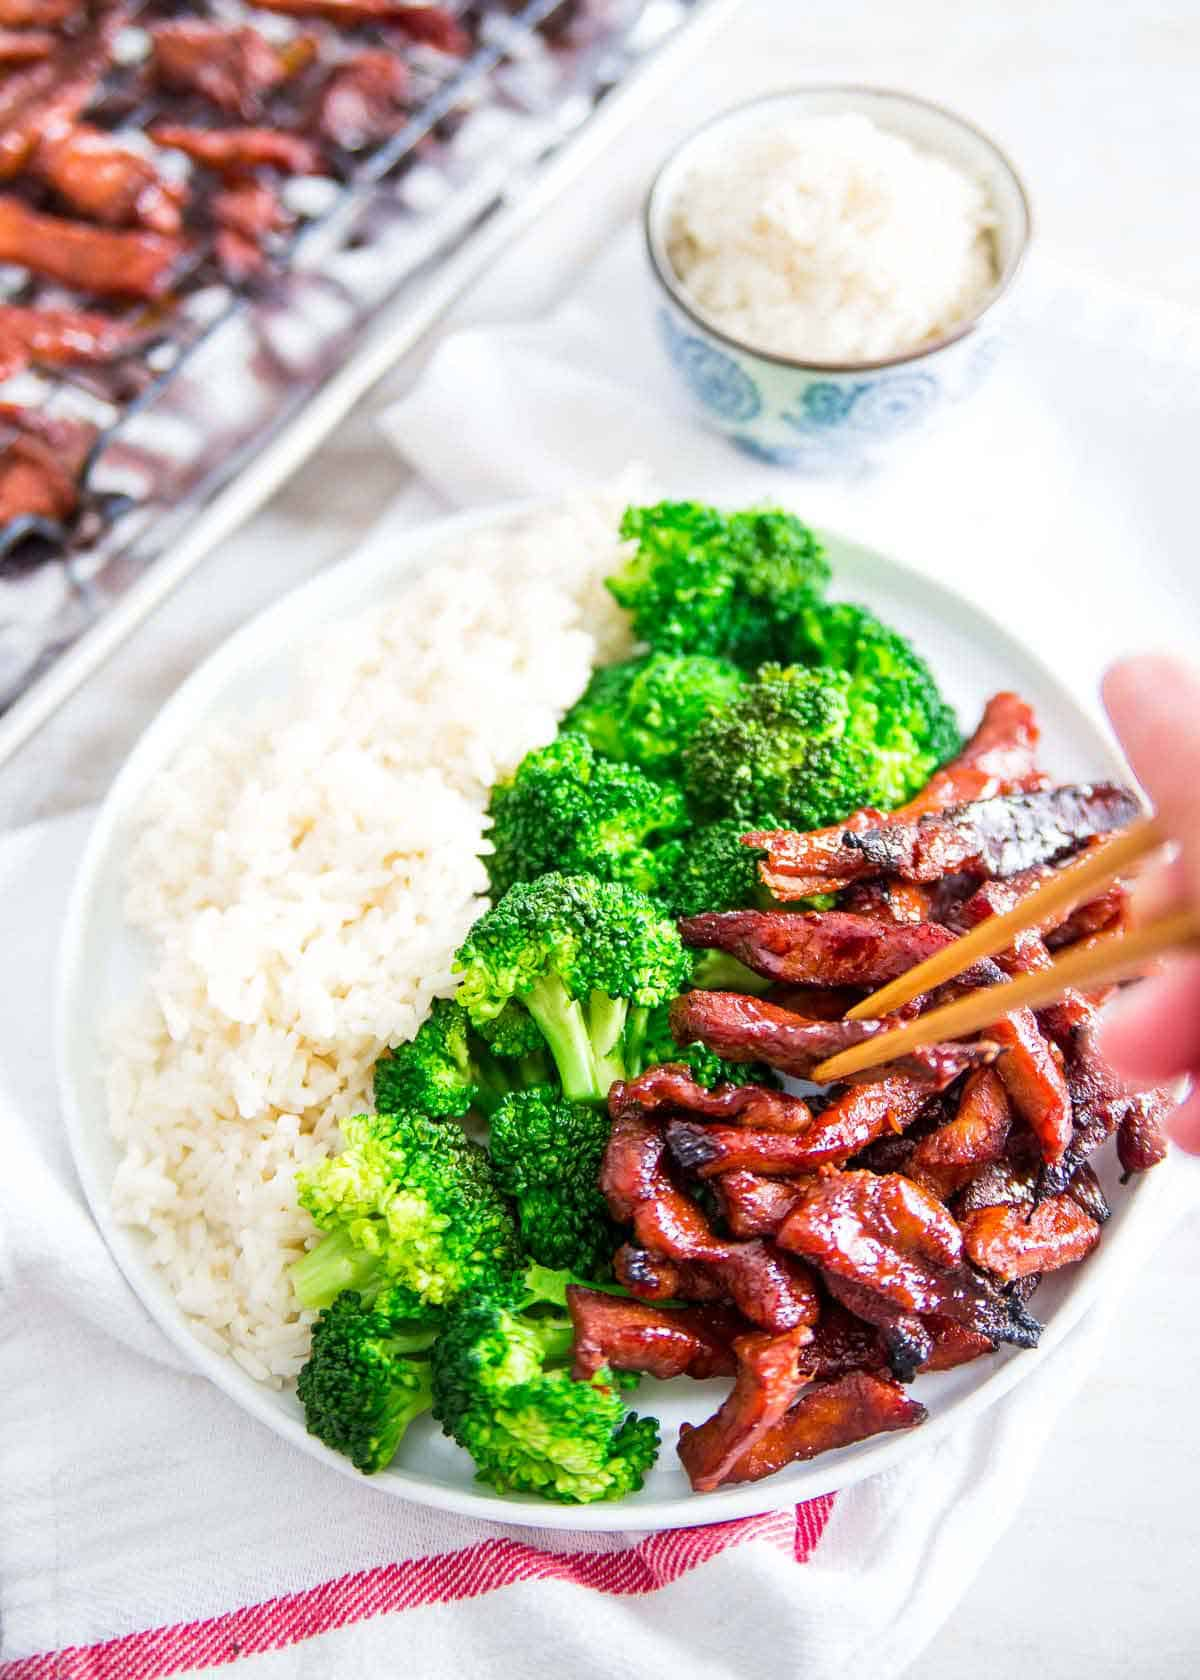 Make Chinese takeout at home with this easy recipe for boneless spare ribs that tastes just like the real thing!